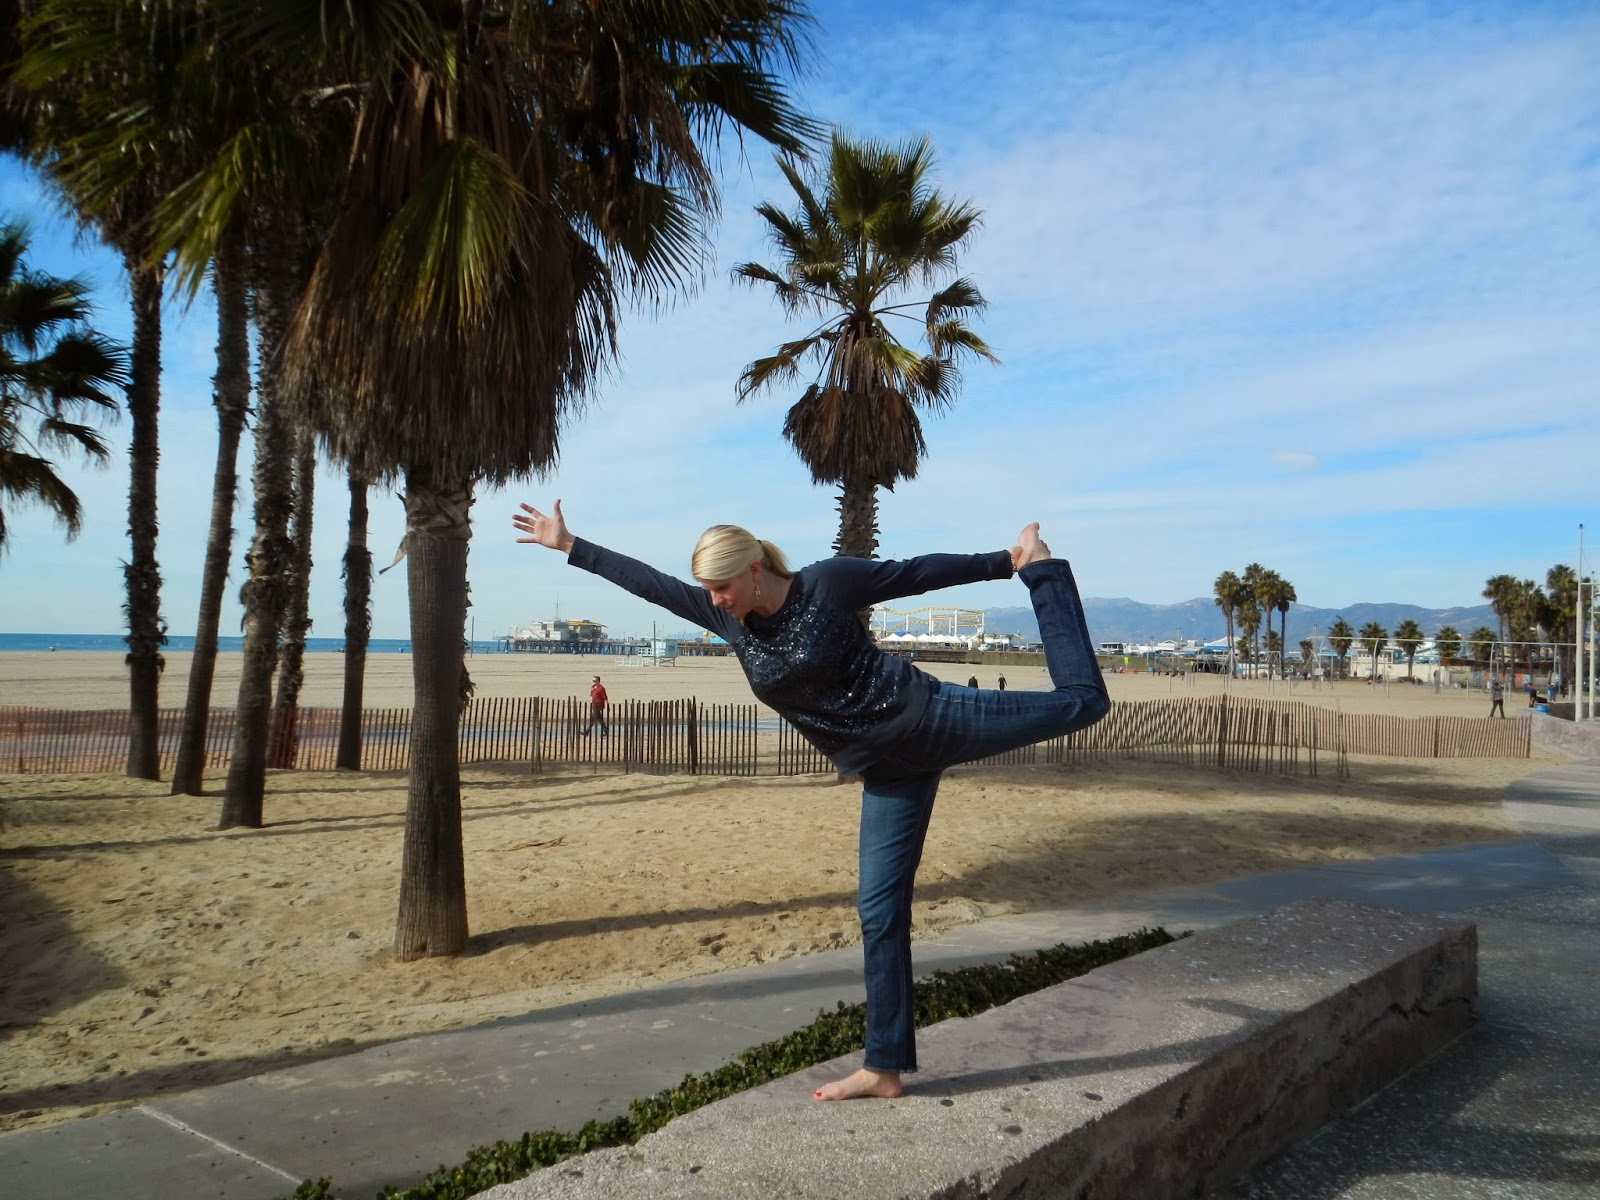 Posing just off the beach just north of the Santa Monica Pier!